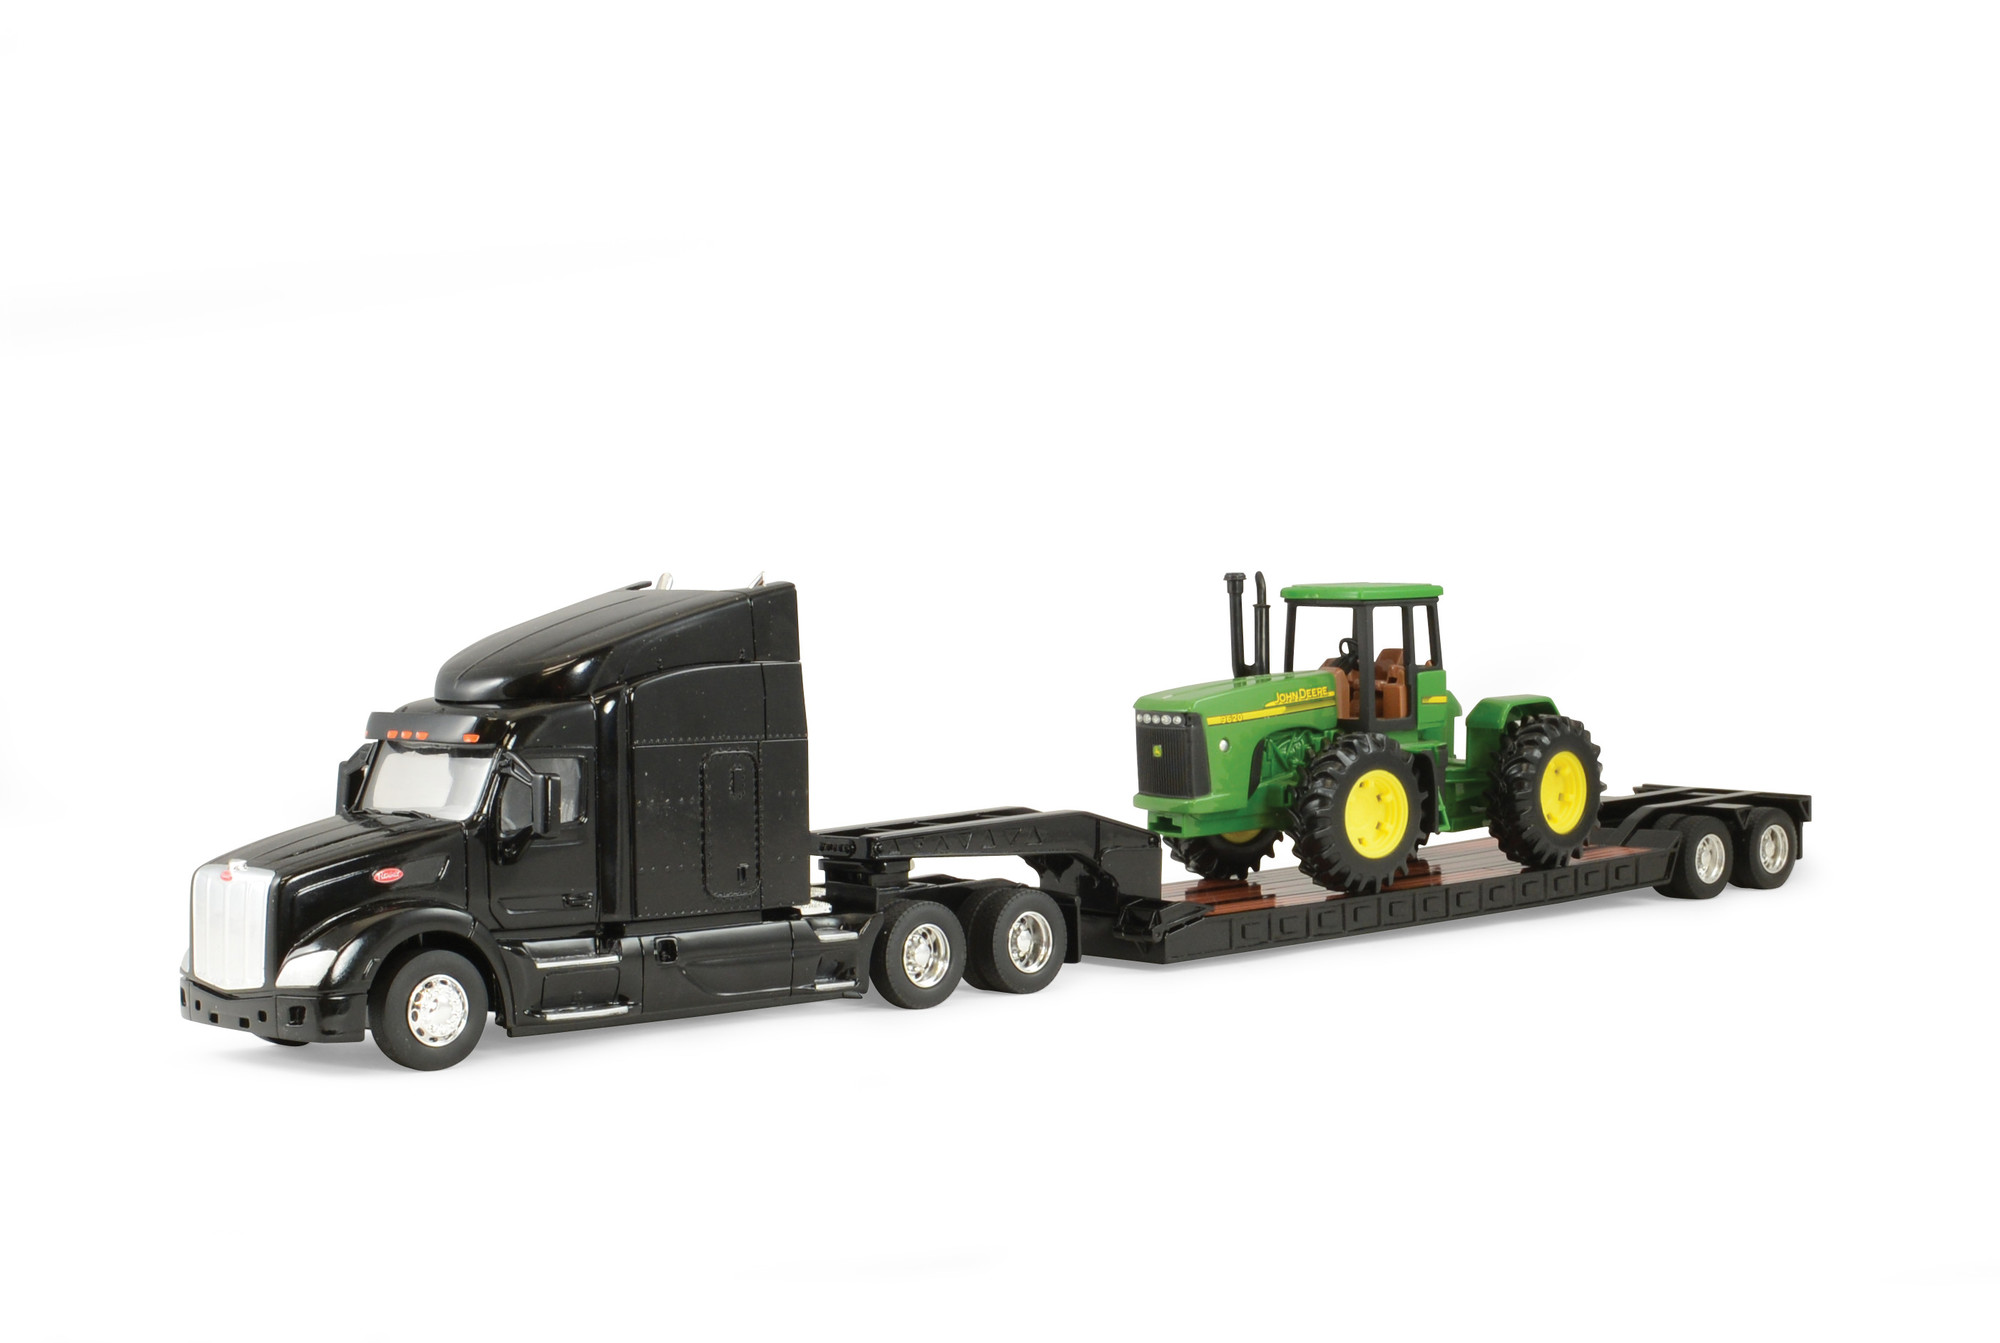 1:32 Peterbilt Model 579 and Lowboy with John Deere 4-Wheel Drive Tractor by Tomy Inc